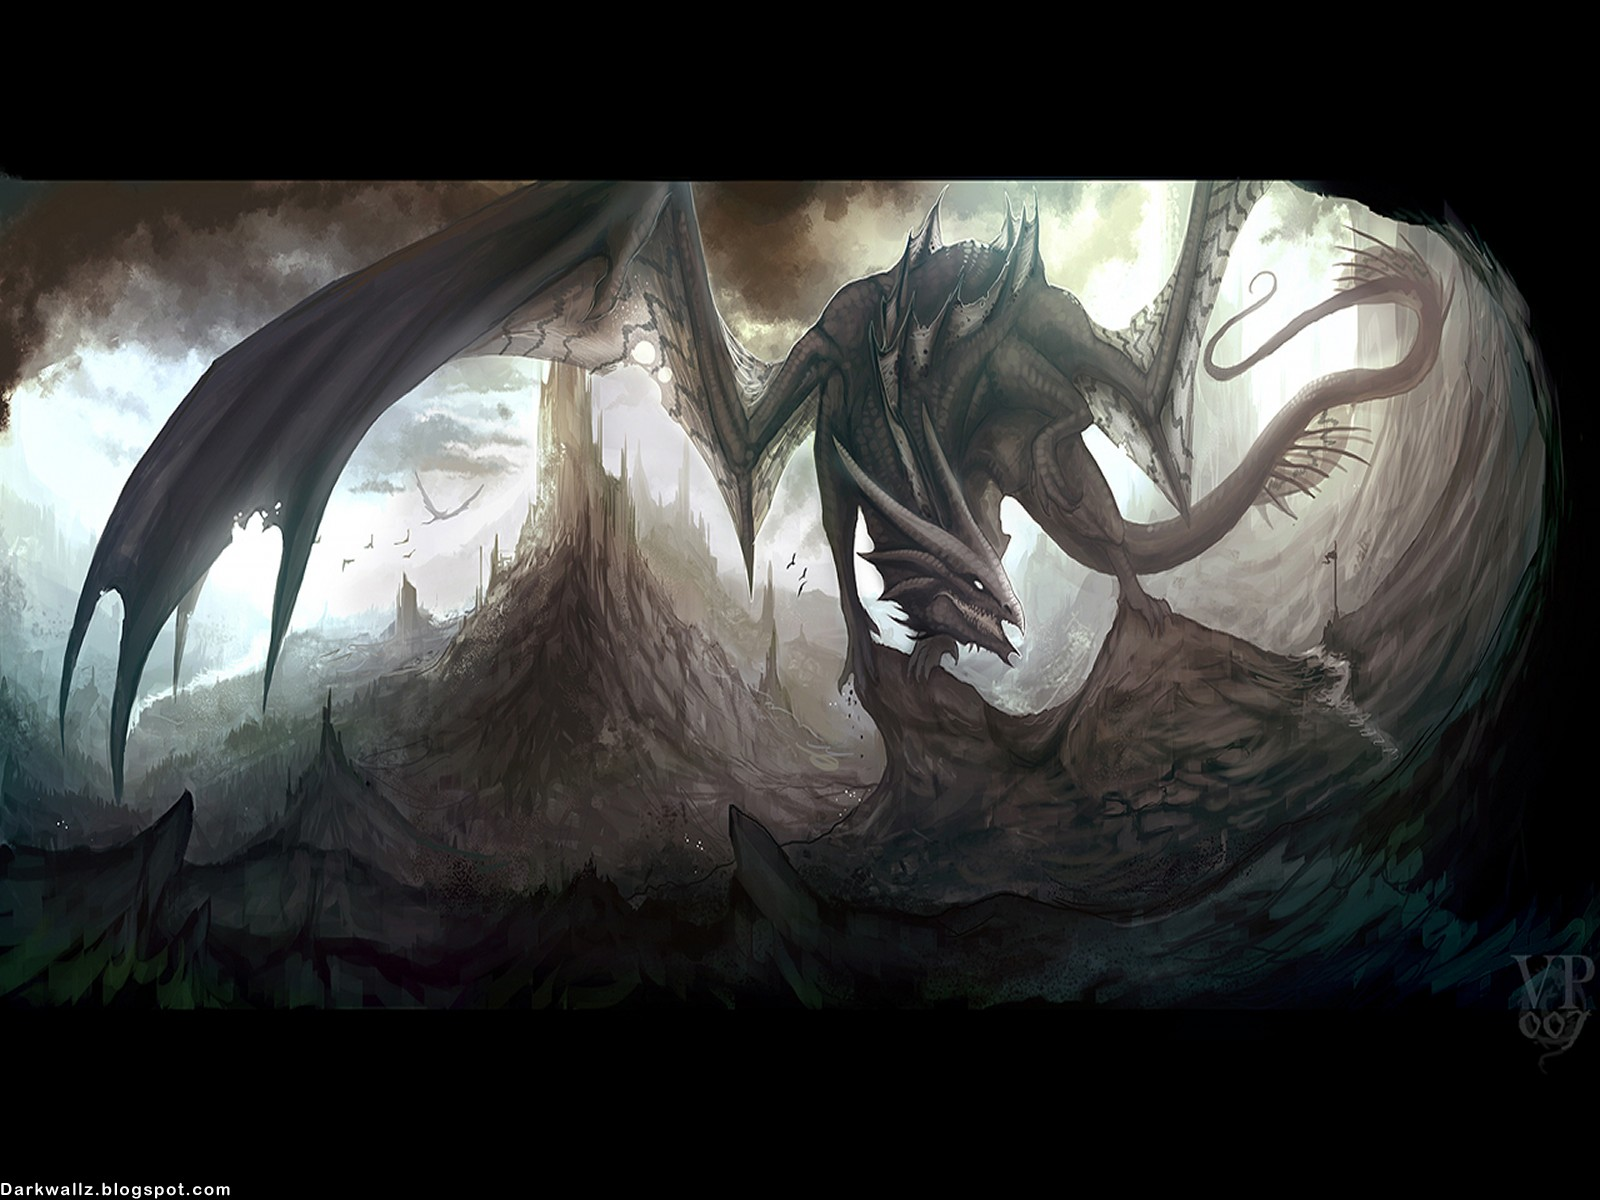 Dark Dragons Wallpapers 20| Dark Wallpaper Download